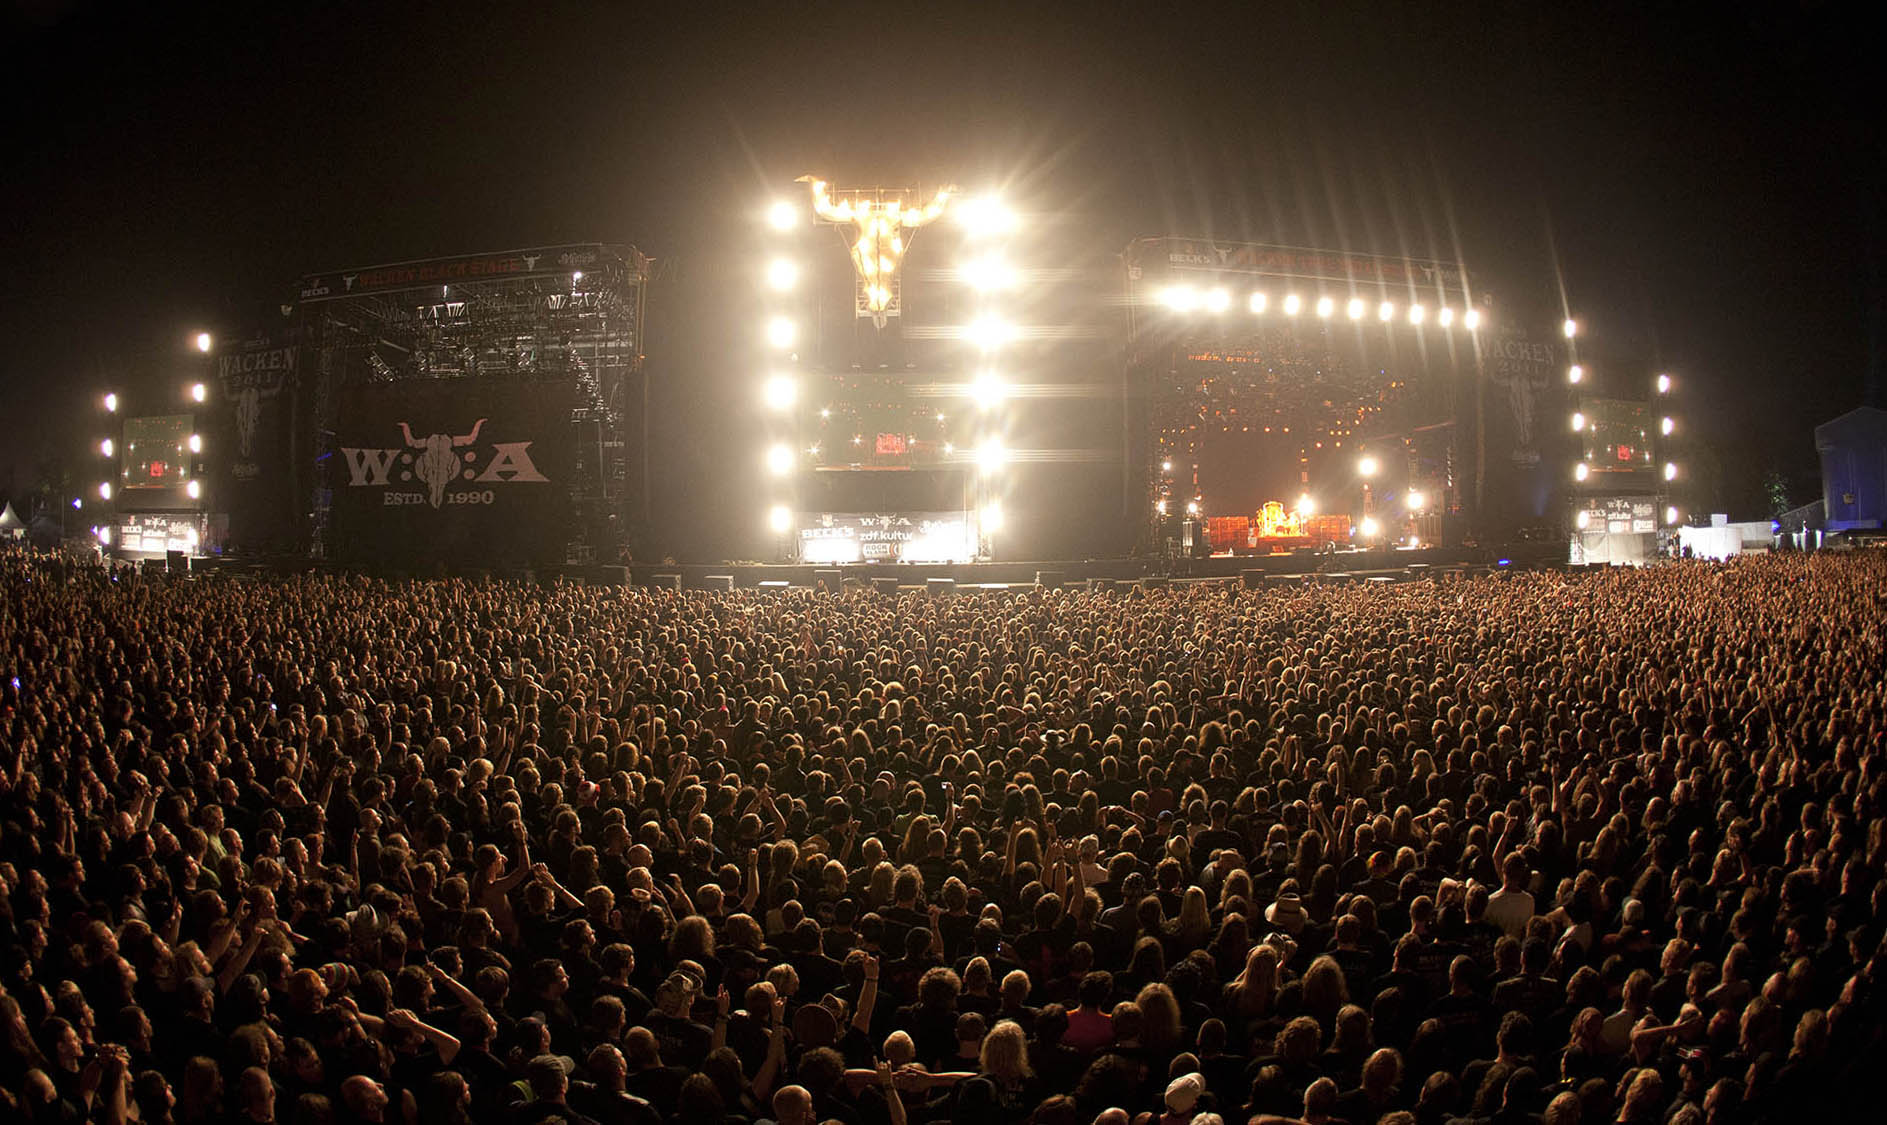 Wacken_Stages-by-night